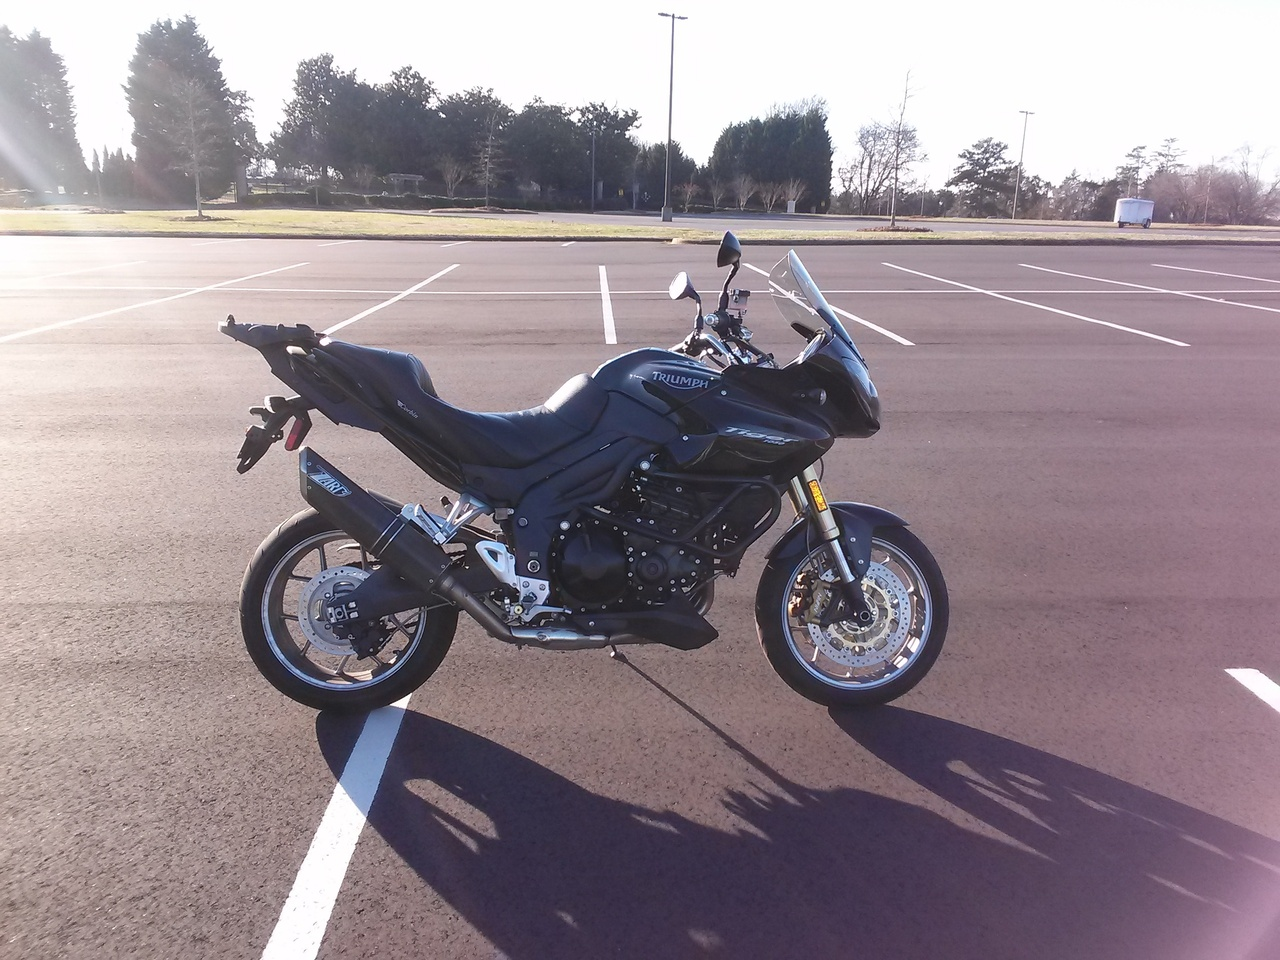 2008 Triumph Tiger 1050 SE, motorcycle listing